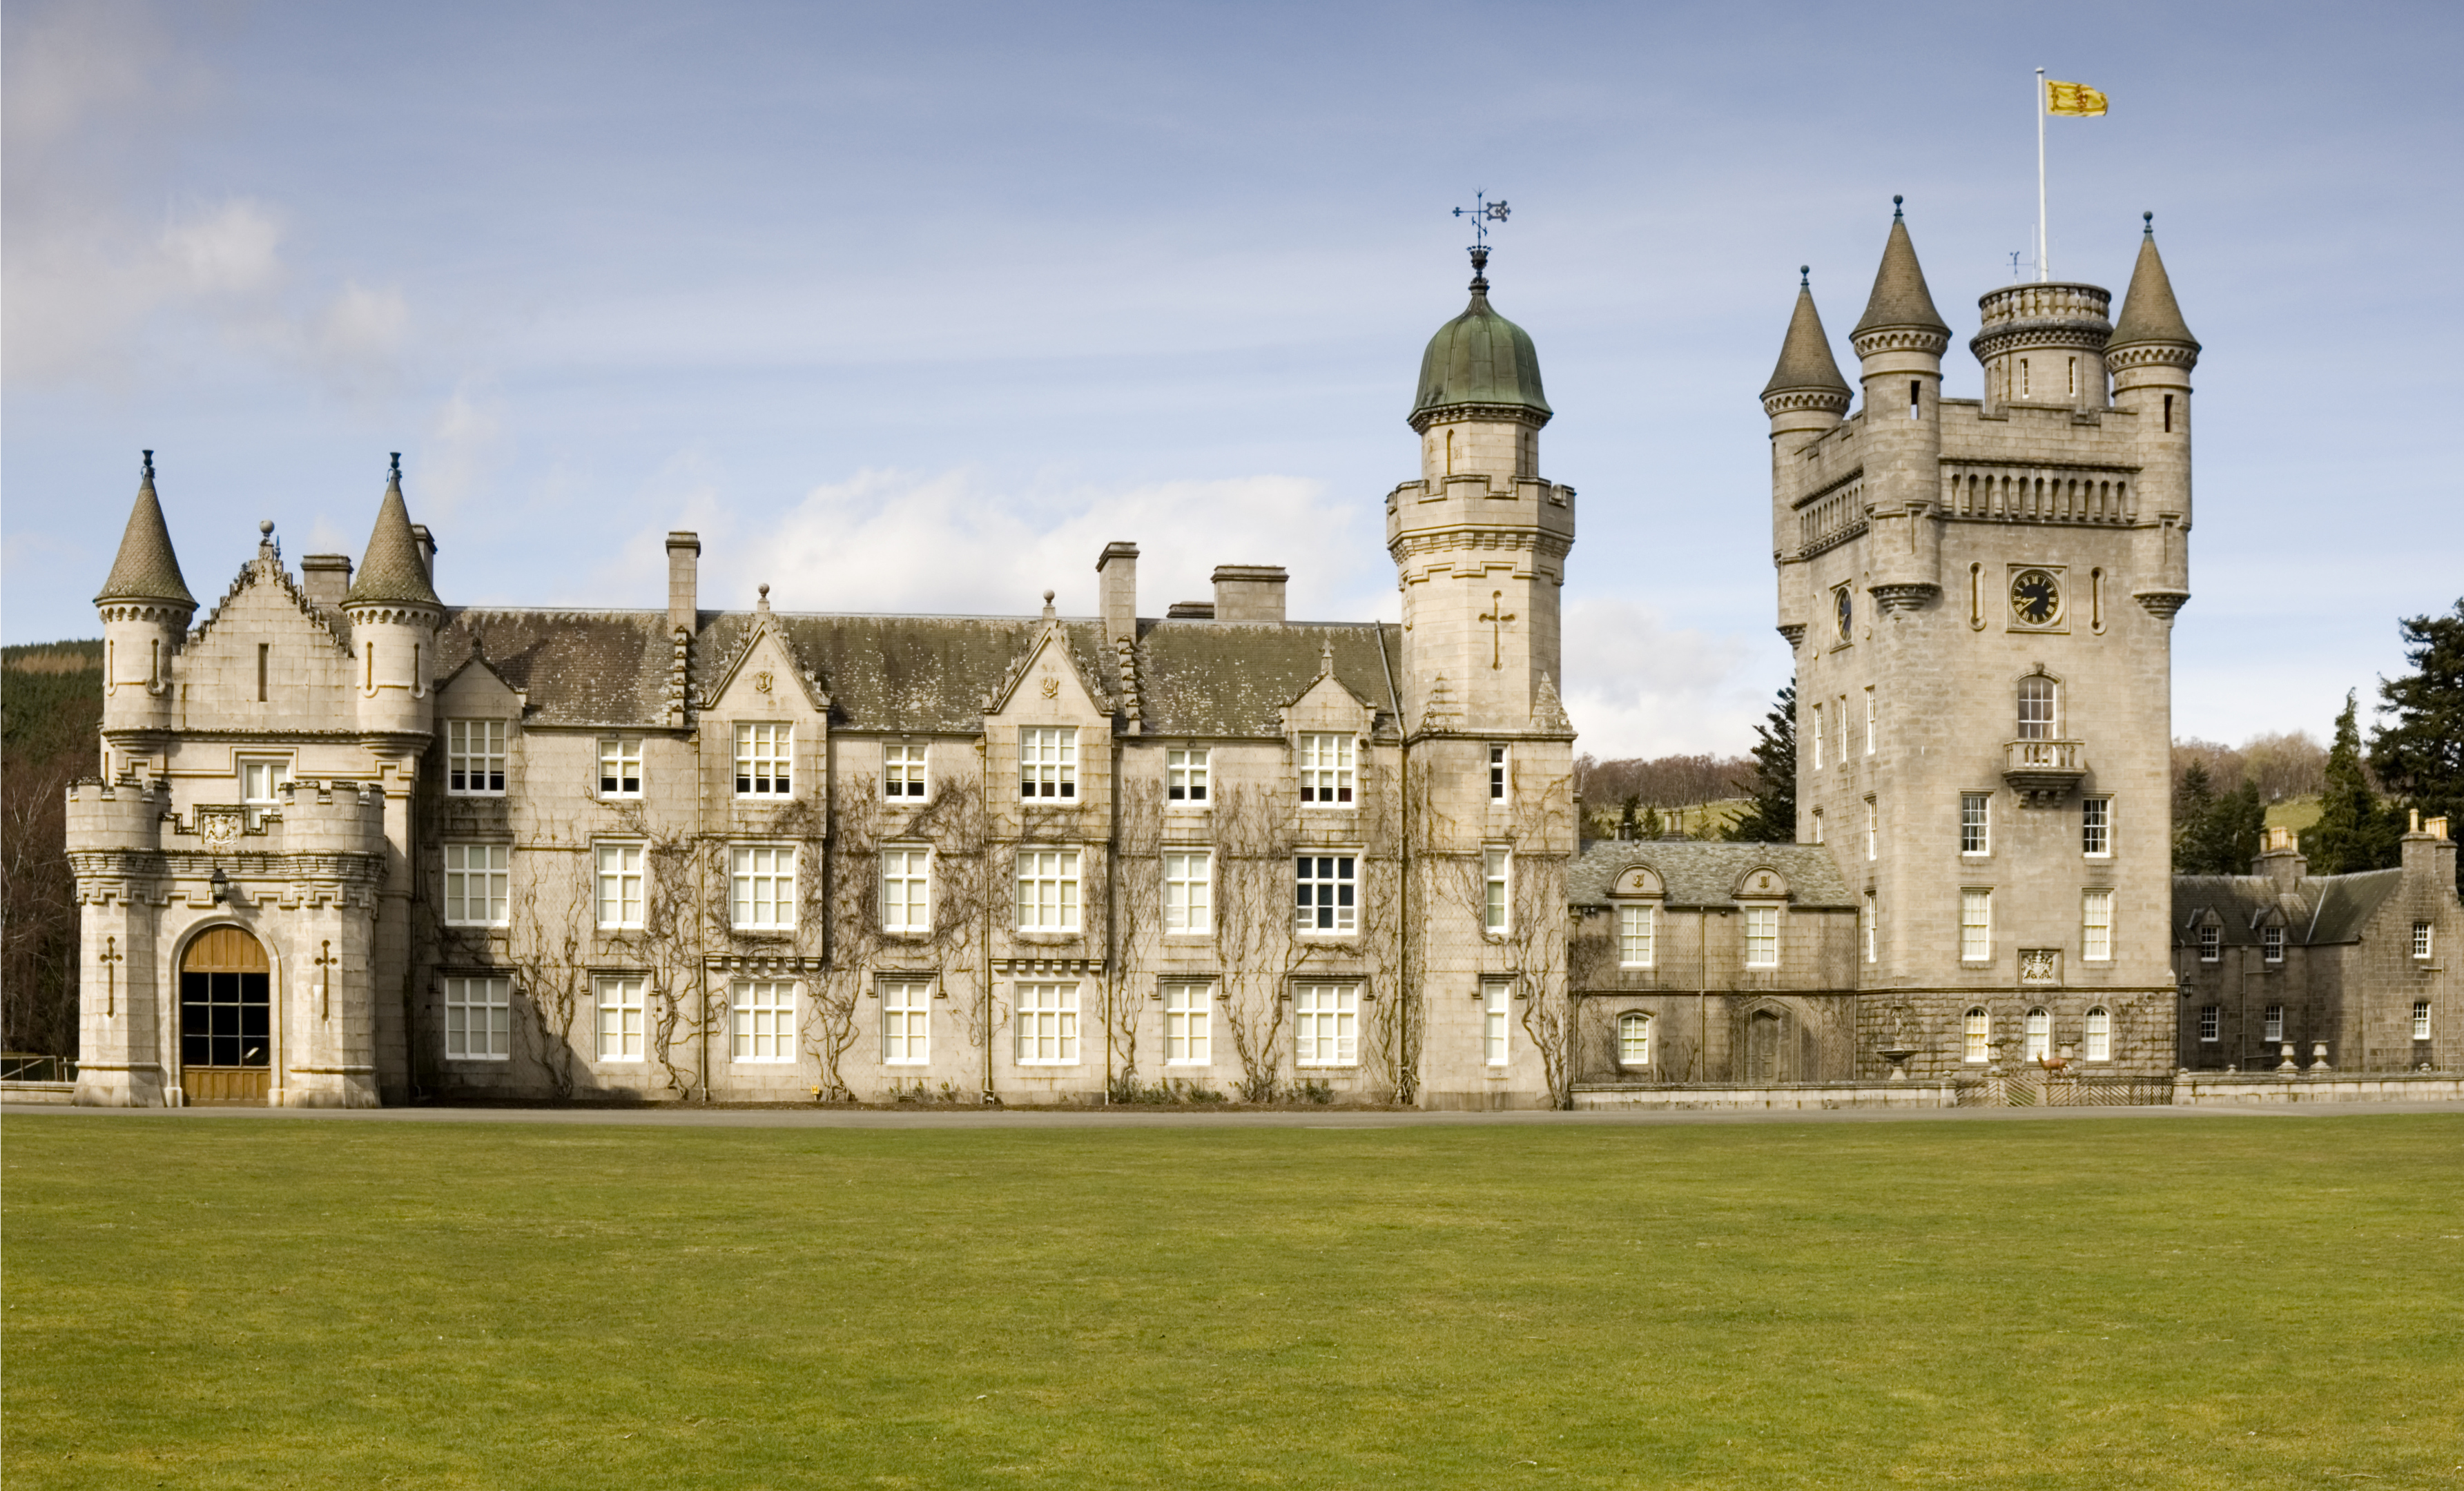 Balmoral (Getty Images/iStock)